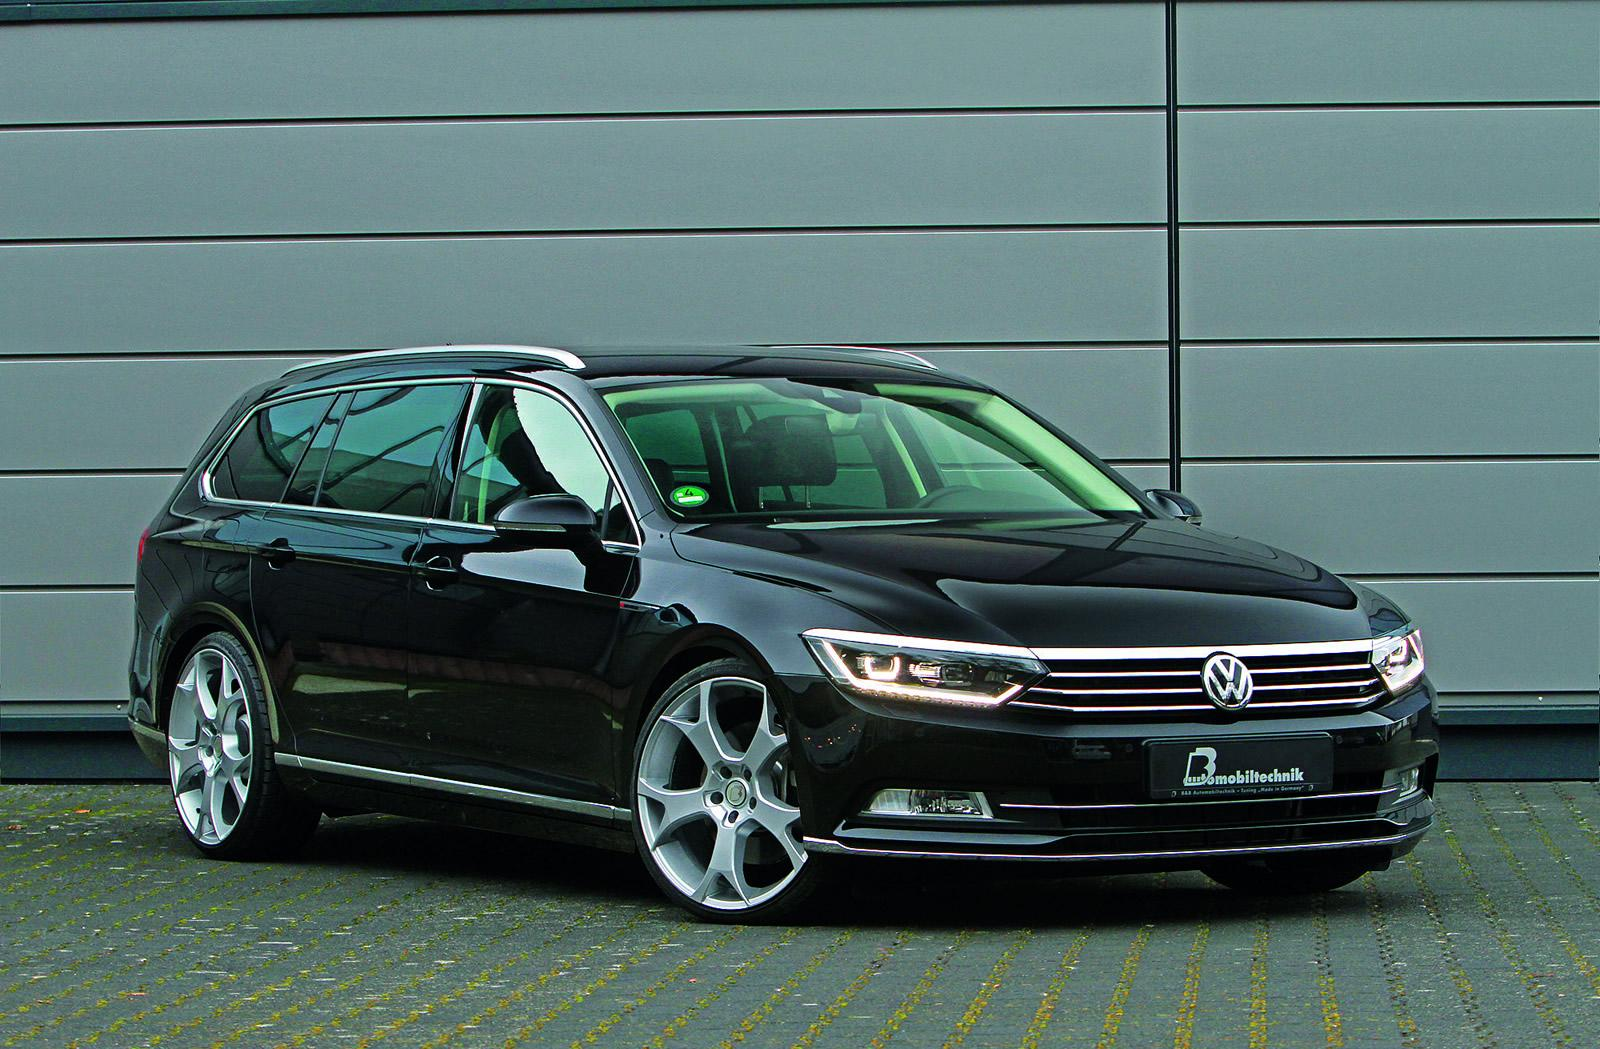 2015 volkswagen passat 2 0 bitdi tuned to 300 hp b8 torque monster autoevolution. Black Bedroom Furniture Sets. Home Design Ideas